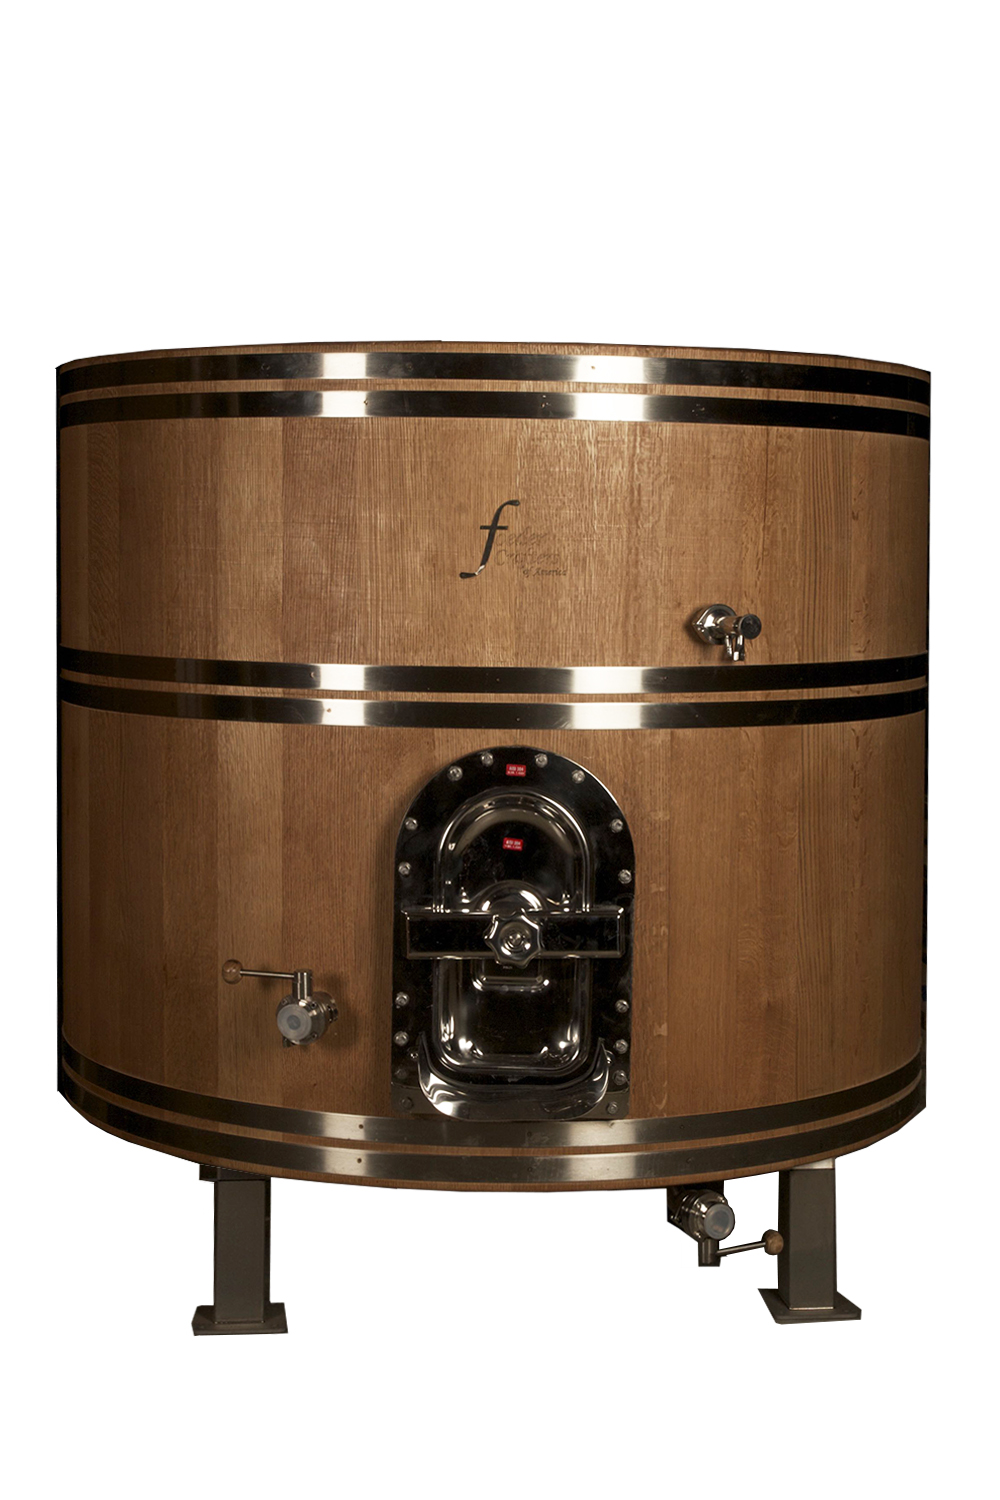 15Barrel_onStand_5037.jpg